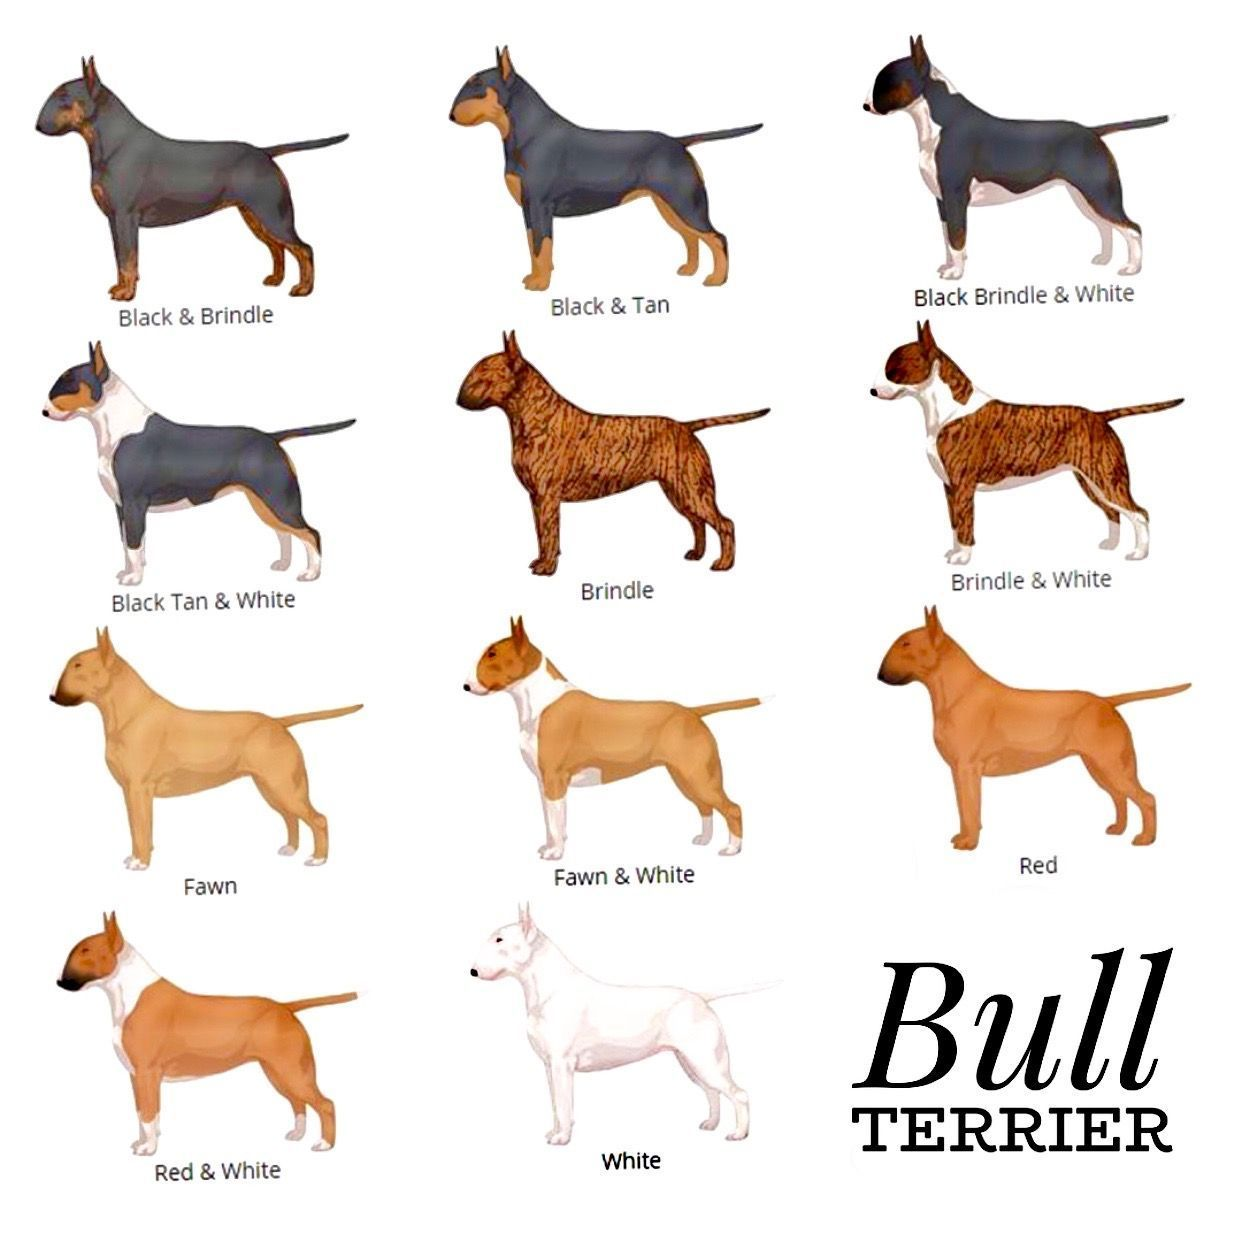 Pitbull Terrier The Different Coats Of Bull Terriers